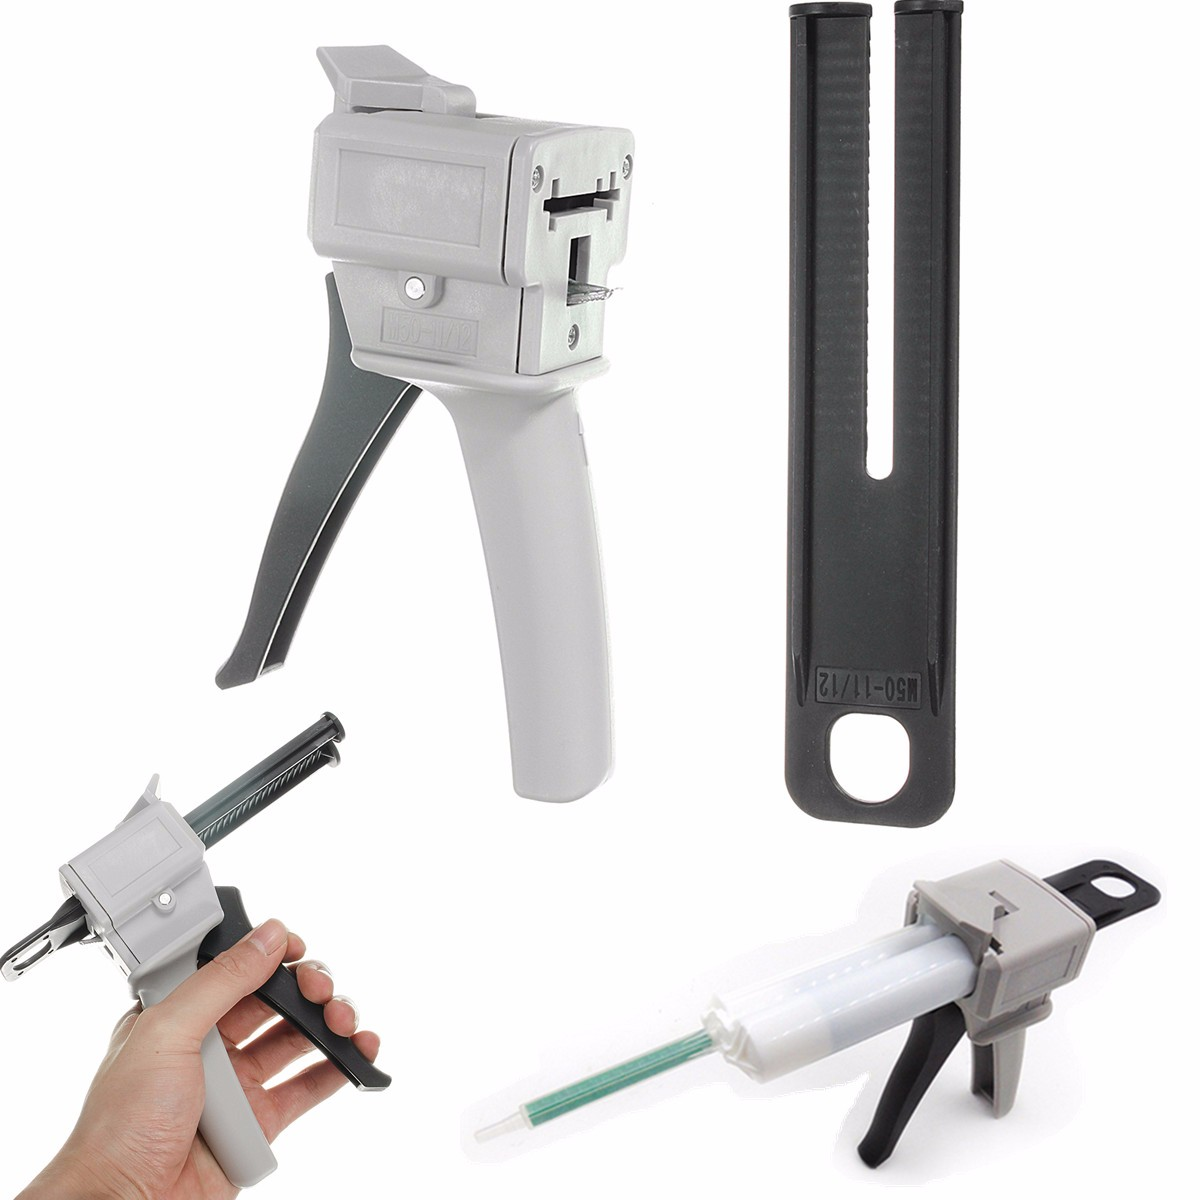 50ml Two Component AB Glue DispensingGun Hand Tools Dispenser 2:1 1:1 Manual CaulkingGun Dispenser